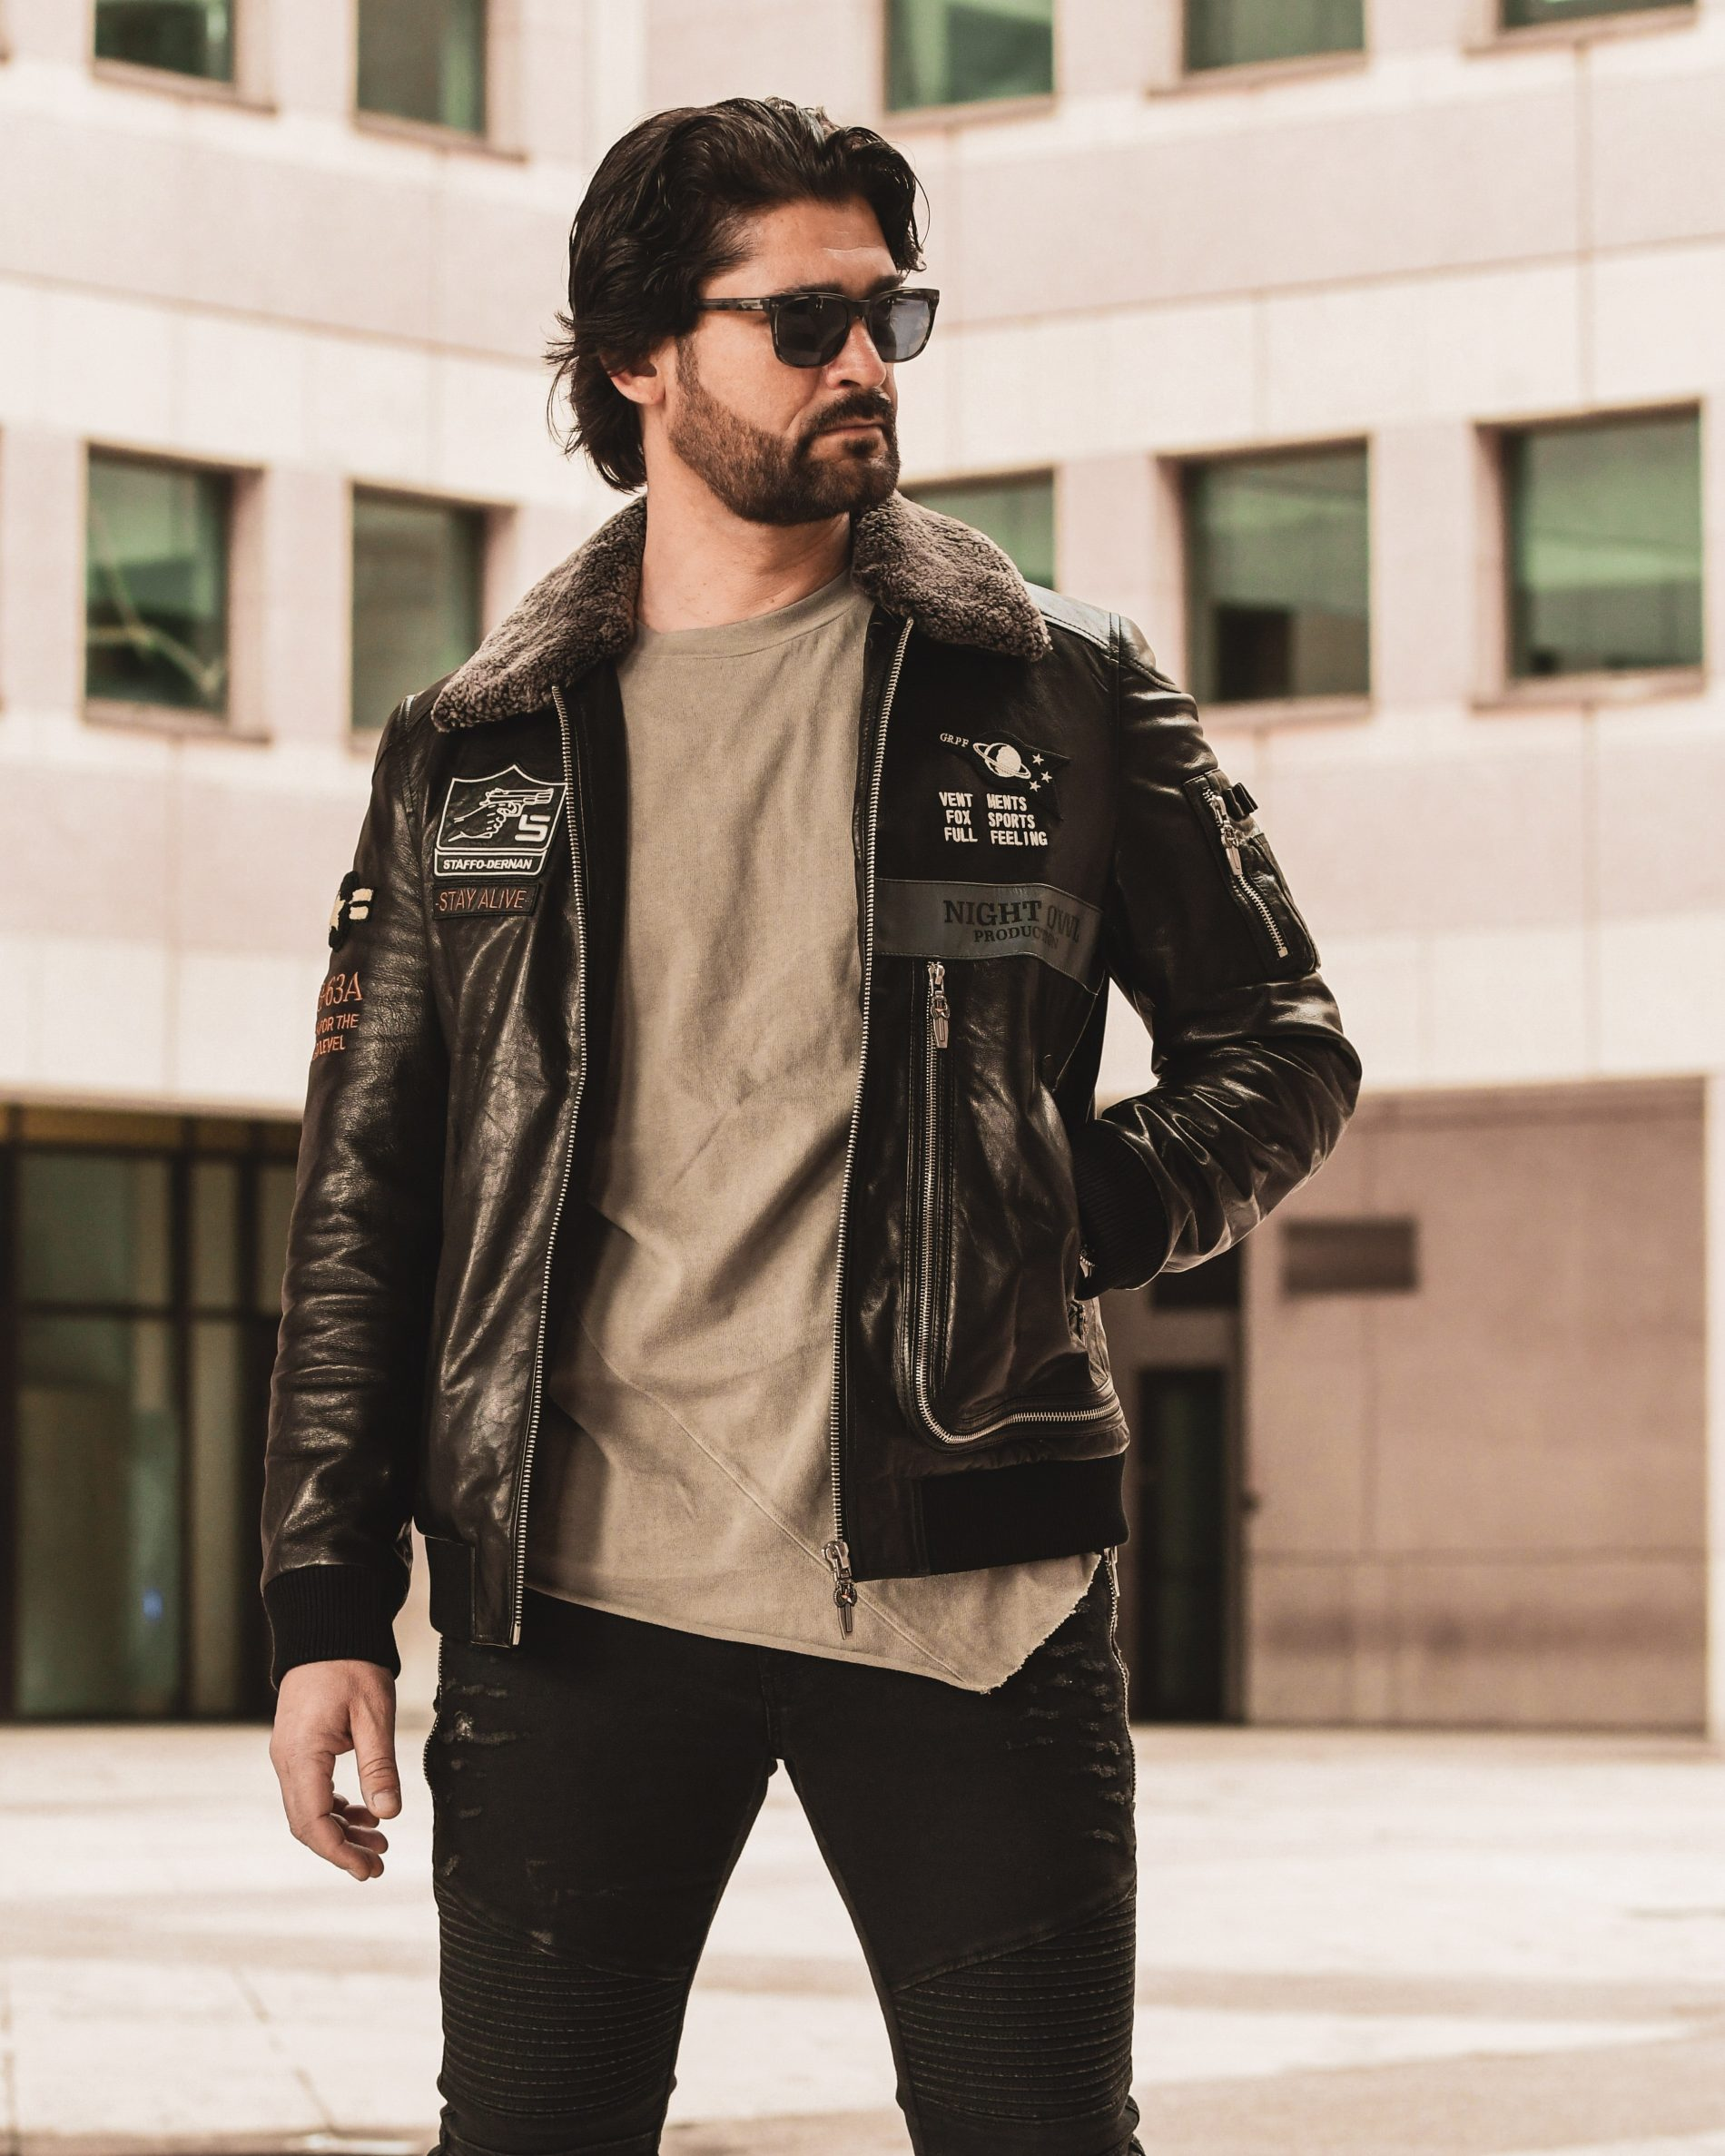 5 jackets every man should own